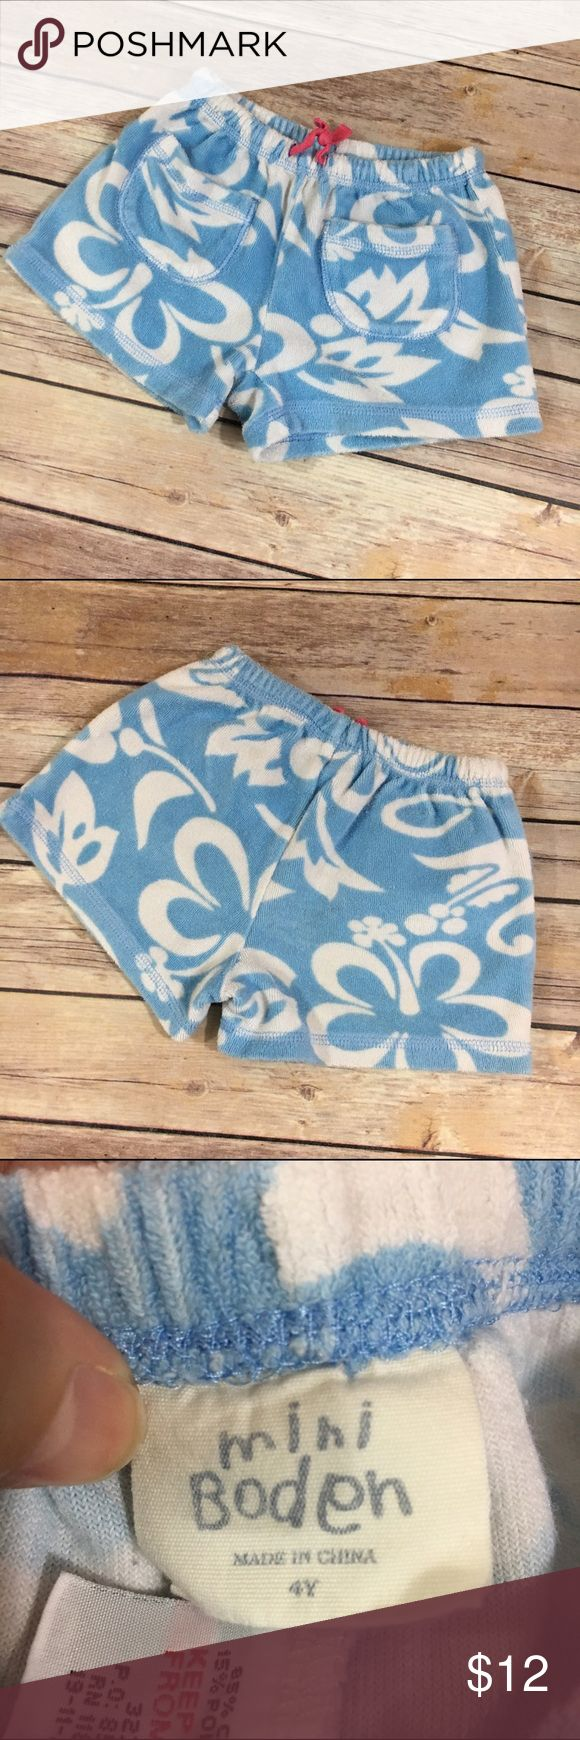 Mini Boden Blue White Hibiscus Terry Shorts 4 Mini Boden Blue White Hibiscus Terry Shorts 4  Very cute, play to good condition.  Wash wear.  Elastic waist.  These look to run small.  Pockets on front.  #terry #terrycloth #beachwear #tothebeach #letsgotothebeach #blue #white #flowers #hibiscus #hawaiian #shorts #shortstuff #summer Mini Boden Bottoms Shorts